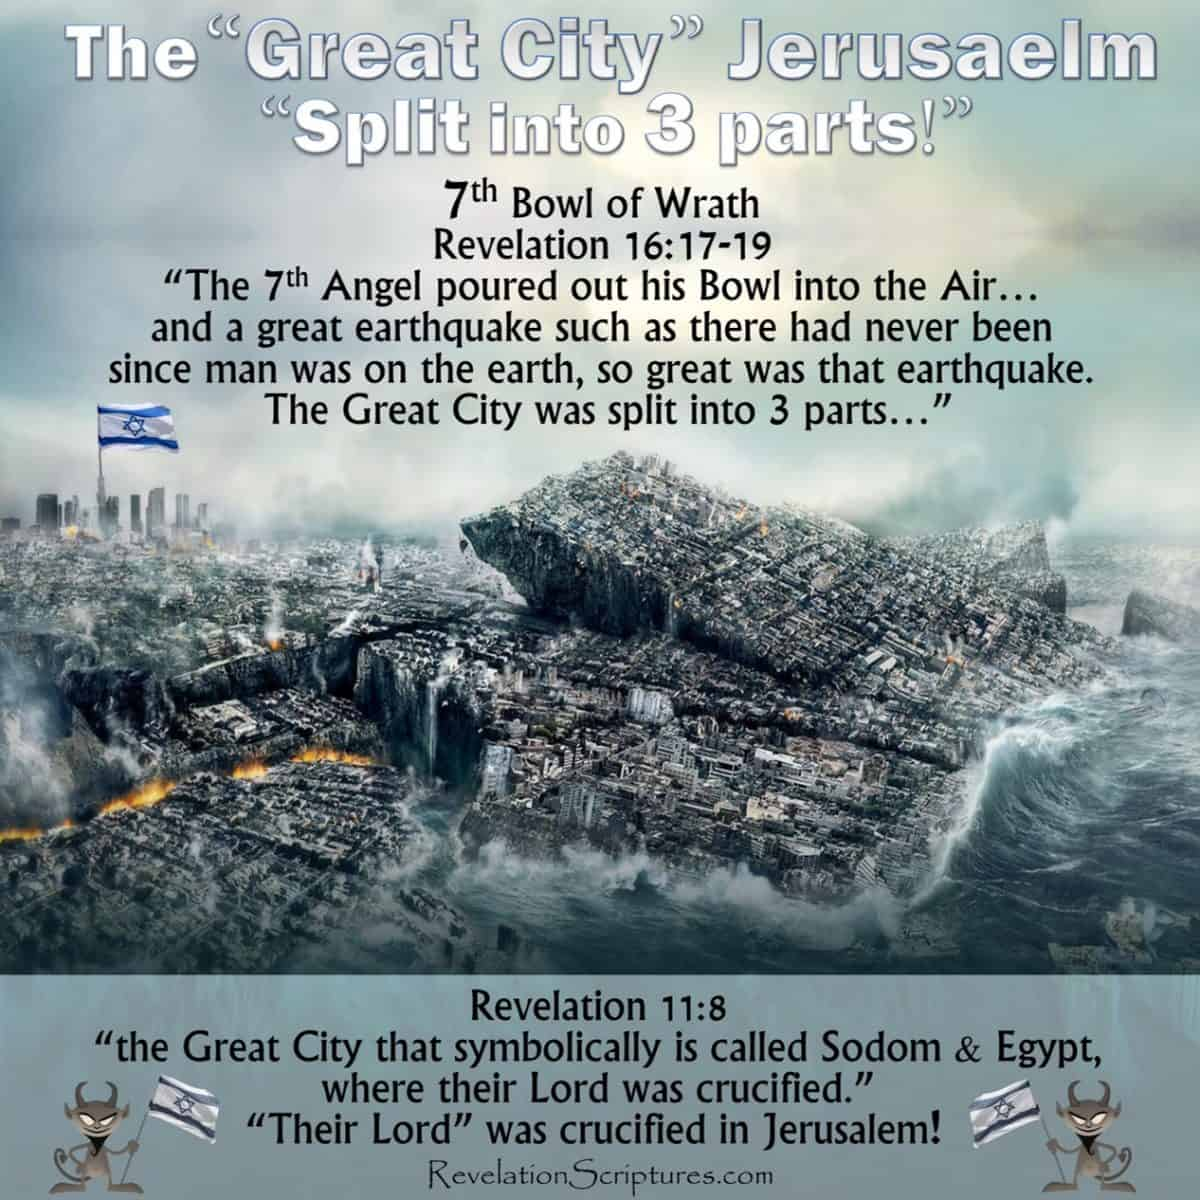 Greater Israel,Oded Yinin,promised land,God's chosen Prople,144000,New Jerusalem,old Jerusalem,Jerusalem in the Middle East,Bless Israel,Curse Israel,Mount Zion,Zion,History of Zionism,Zionist,political Zionism,Israel,Jerusalem,city of David,dome of the rock, anti-Semitic,antisemitism,anti-judaism,anti semetic,BDS,Boycott,Divestment,sanctions,colonialism,Great Britian,Rothschild,rockefeller,revised history,satanic,satan,devil,demon,demons,lucifer,Jew,jewish,state of Israel,genocide,land,theft,jews,sinister,Iran War,propaganda,Nazi,holocaust,ethnic cleansing,apartheid,illegal,antisemitic,jewish lobby,APIC,Jewish media control,Greater Plan of Israel,False Prophet,Fake Jews,Zionism,Zionist,synagogue of Satan,throne of Satan,Jewish messiah,Star of David,Star of Rephan,1948,illegal settlements,lying Jews,seed of the devil,devil's seed,devil's offspring,Jerusalem Capital,Capital Jerusalem,Talmud,Star of Remphan,Star of David,Acts 7:43,Moloch,Talmud,Kabbalah, Great City,the Great city,Sodom,Egypt,Symbolically called sodom and egypt,Spiritually called Sodom & Egypt,where our lord was crucified,Revelation 11:8,6th Trumpet,Sixth Trumpet,2nd Woe,Second woe, False Prophet,Revelation 13,Beast from Earth,fire from the sky, Fake Jews,Lying Jews,Synagogue of Satan,Say the are Jews but lie,say they are Jews but are not,Slander,bow down,Revelation 2:9,Revelation 3:9,Philadelphia,Smyrna,Church of Philadelphia,Church of Smyrna, Book of Revelation,Revelation,Apocalypse,Synagogue,Jewish Synagogue,